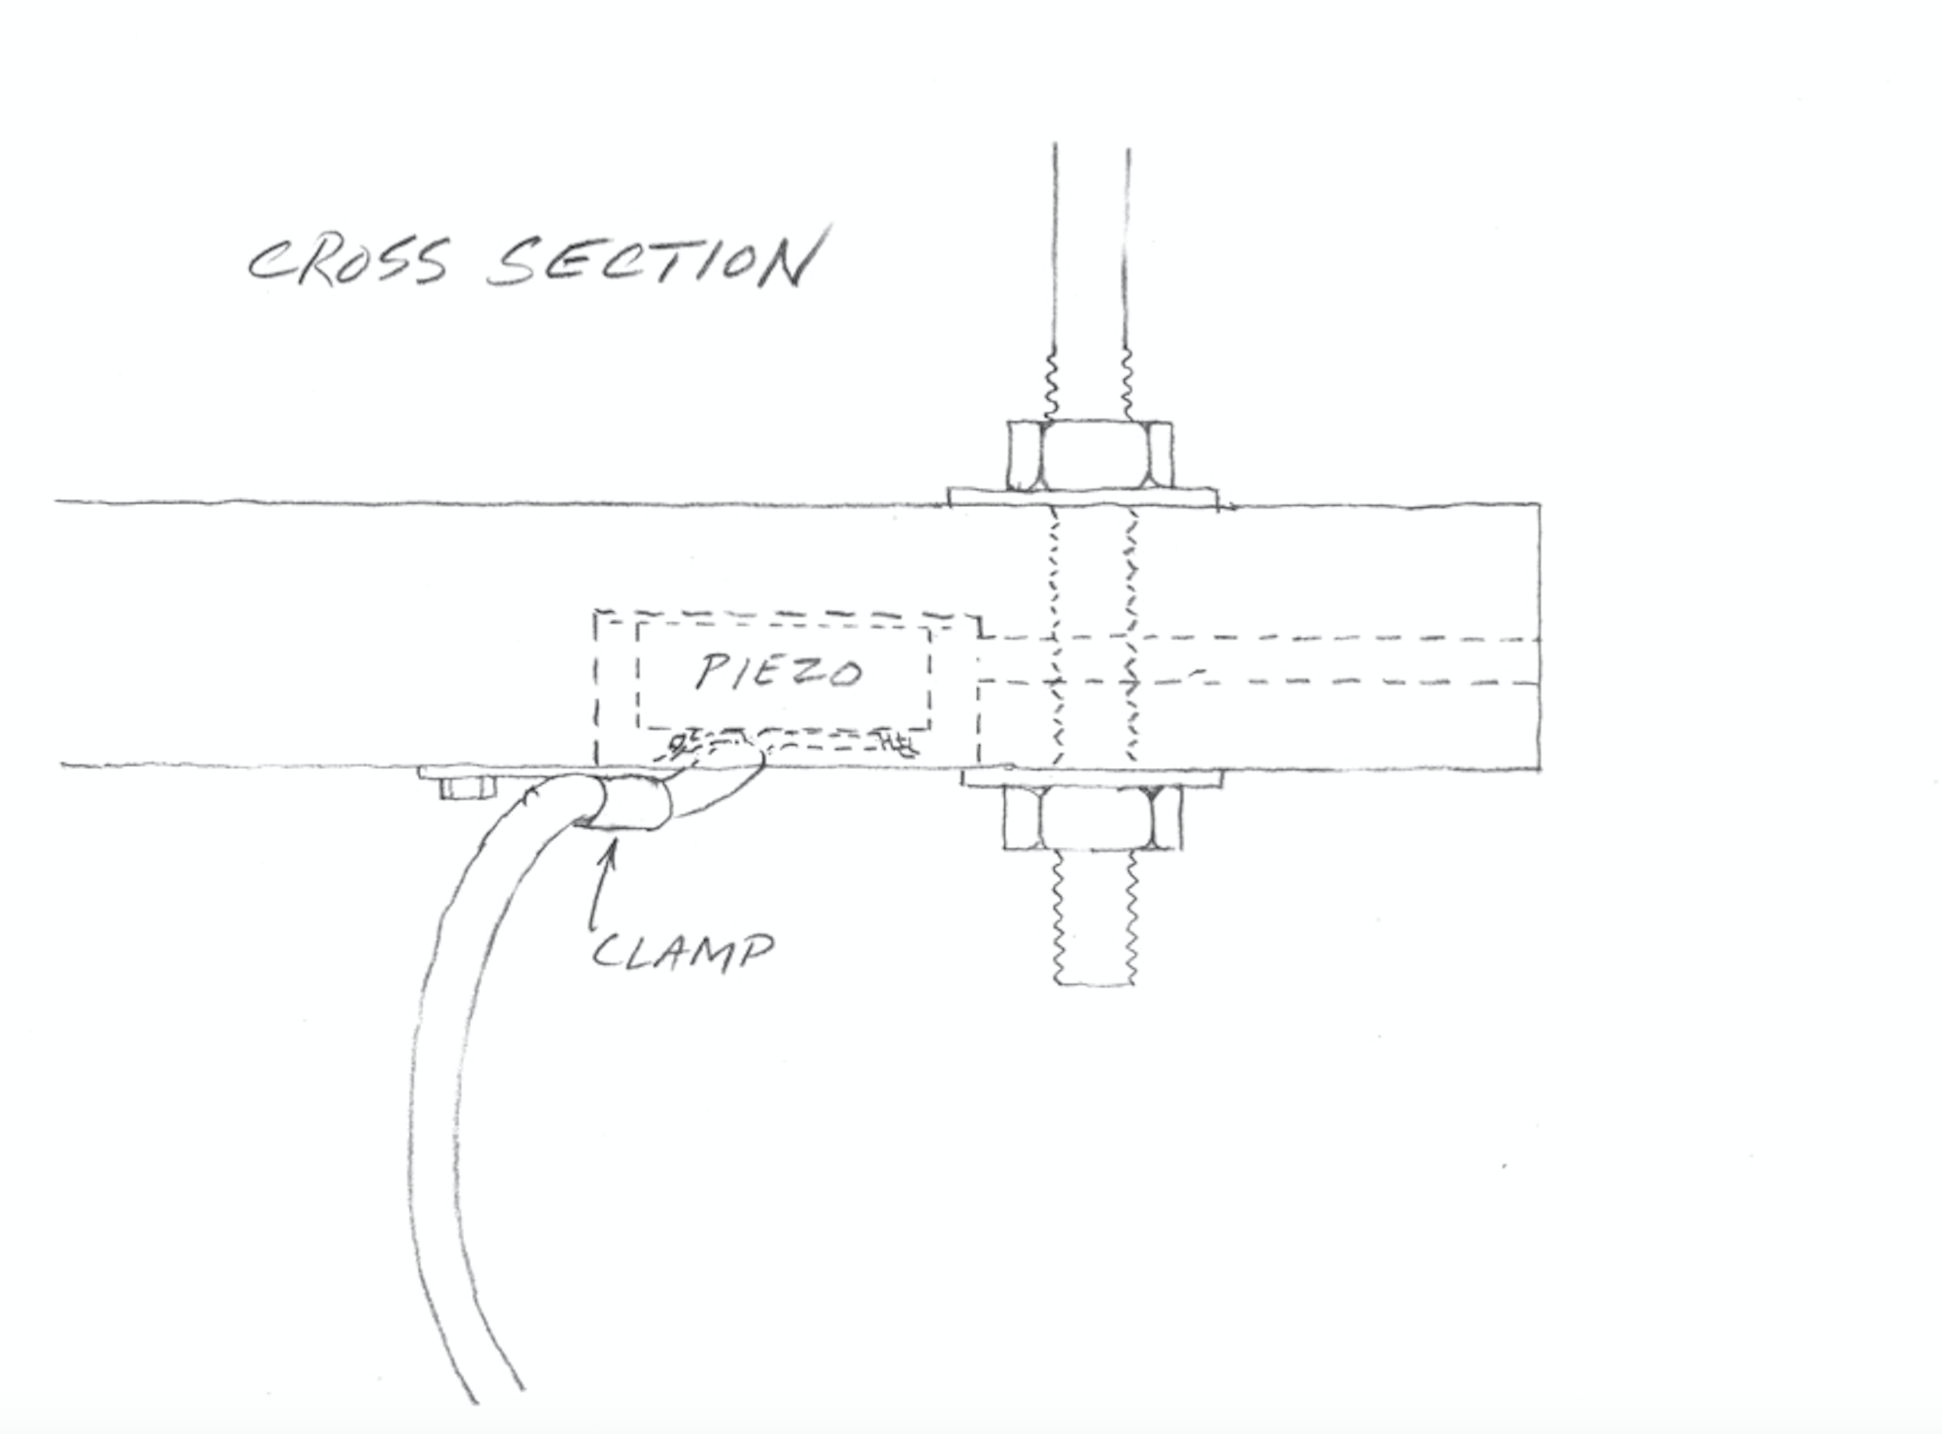 A cross section view of the mounting of the piezo disk on the Springboard. Drawing by Eric Leonardson. © Eric Leonardson